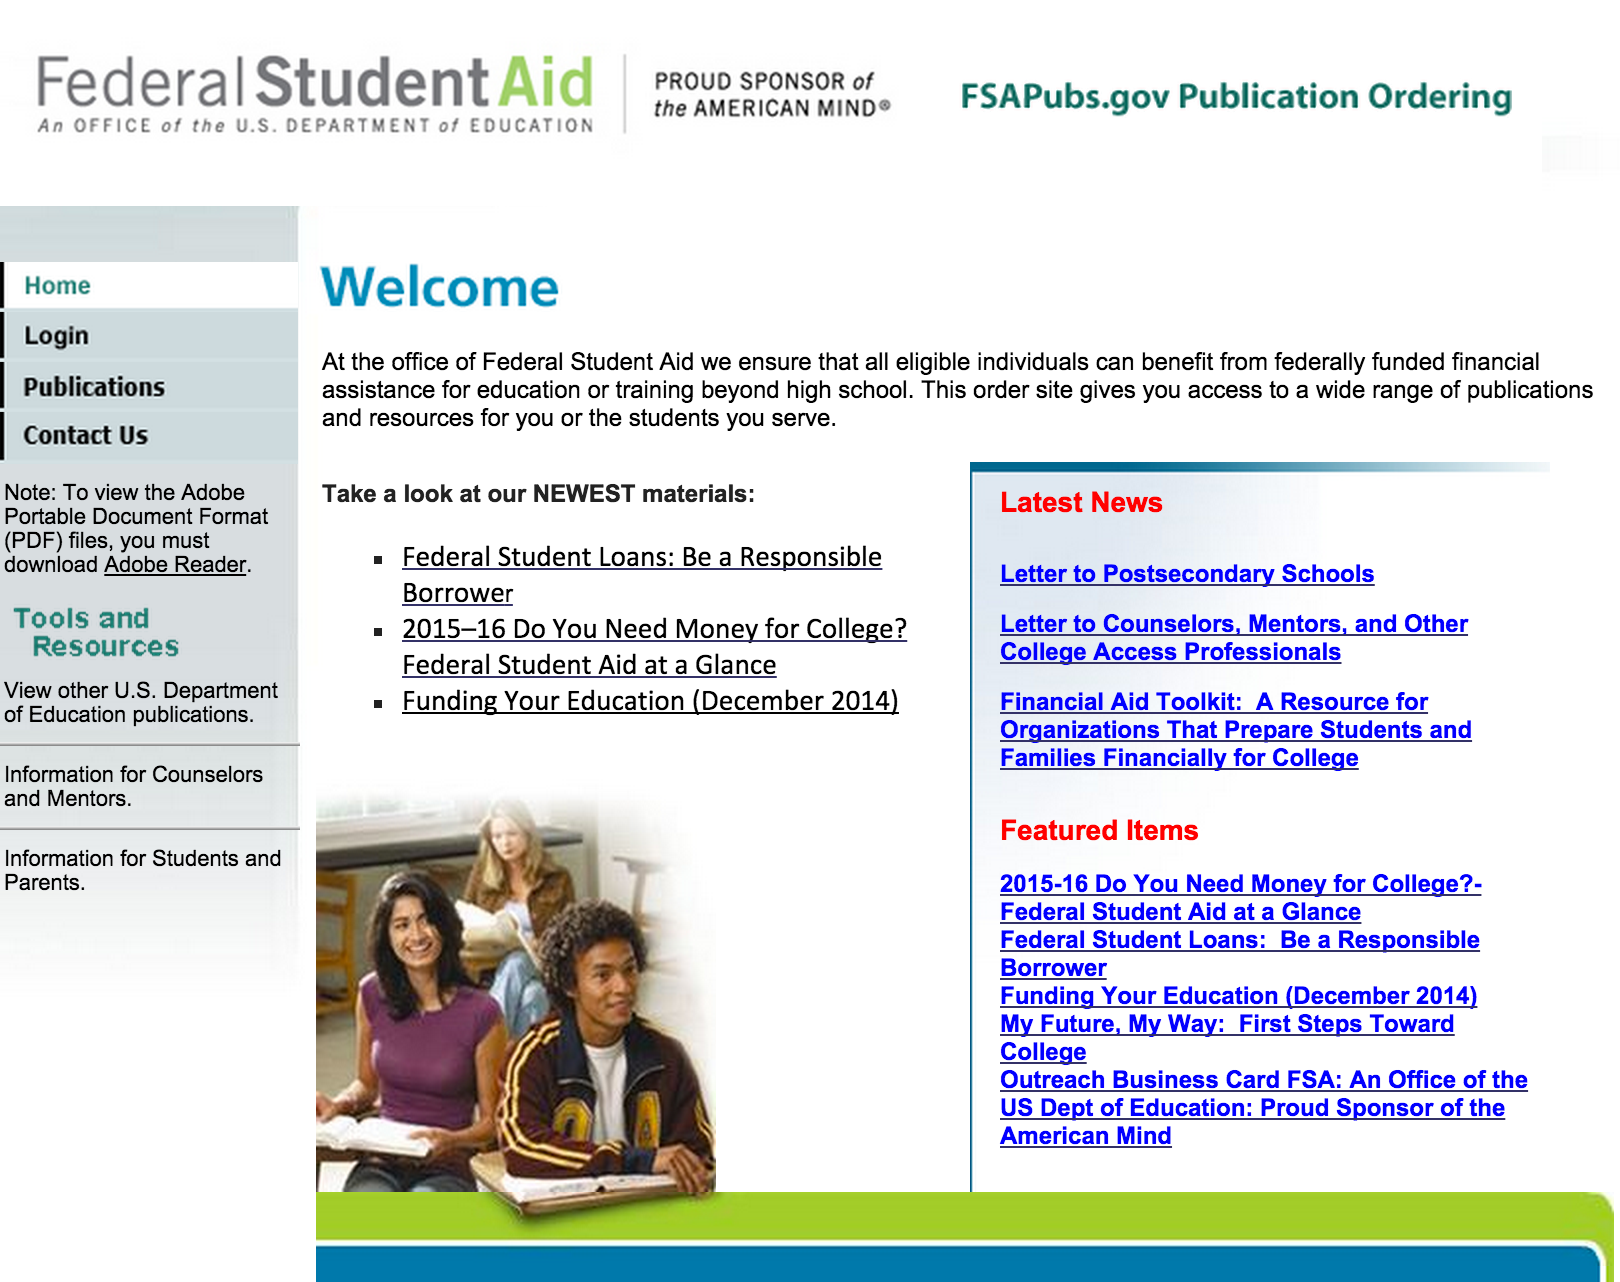 Schools May Order Bulk Quantities Of The Fafsa On The Web Worksheet On Fsapubs